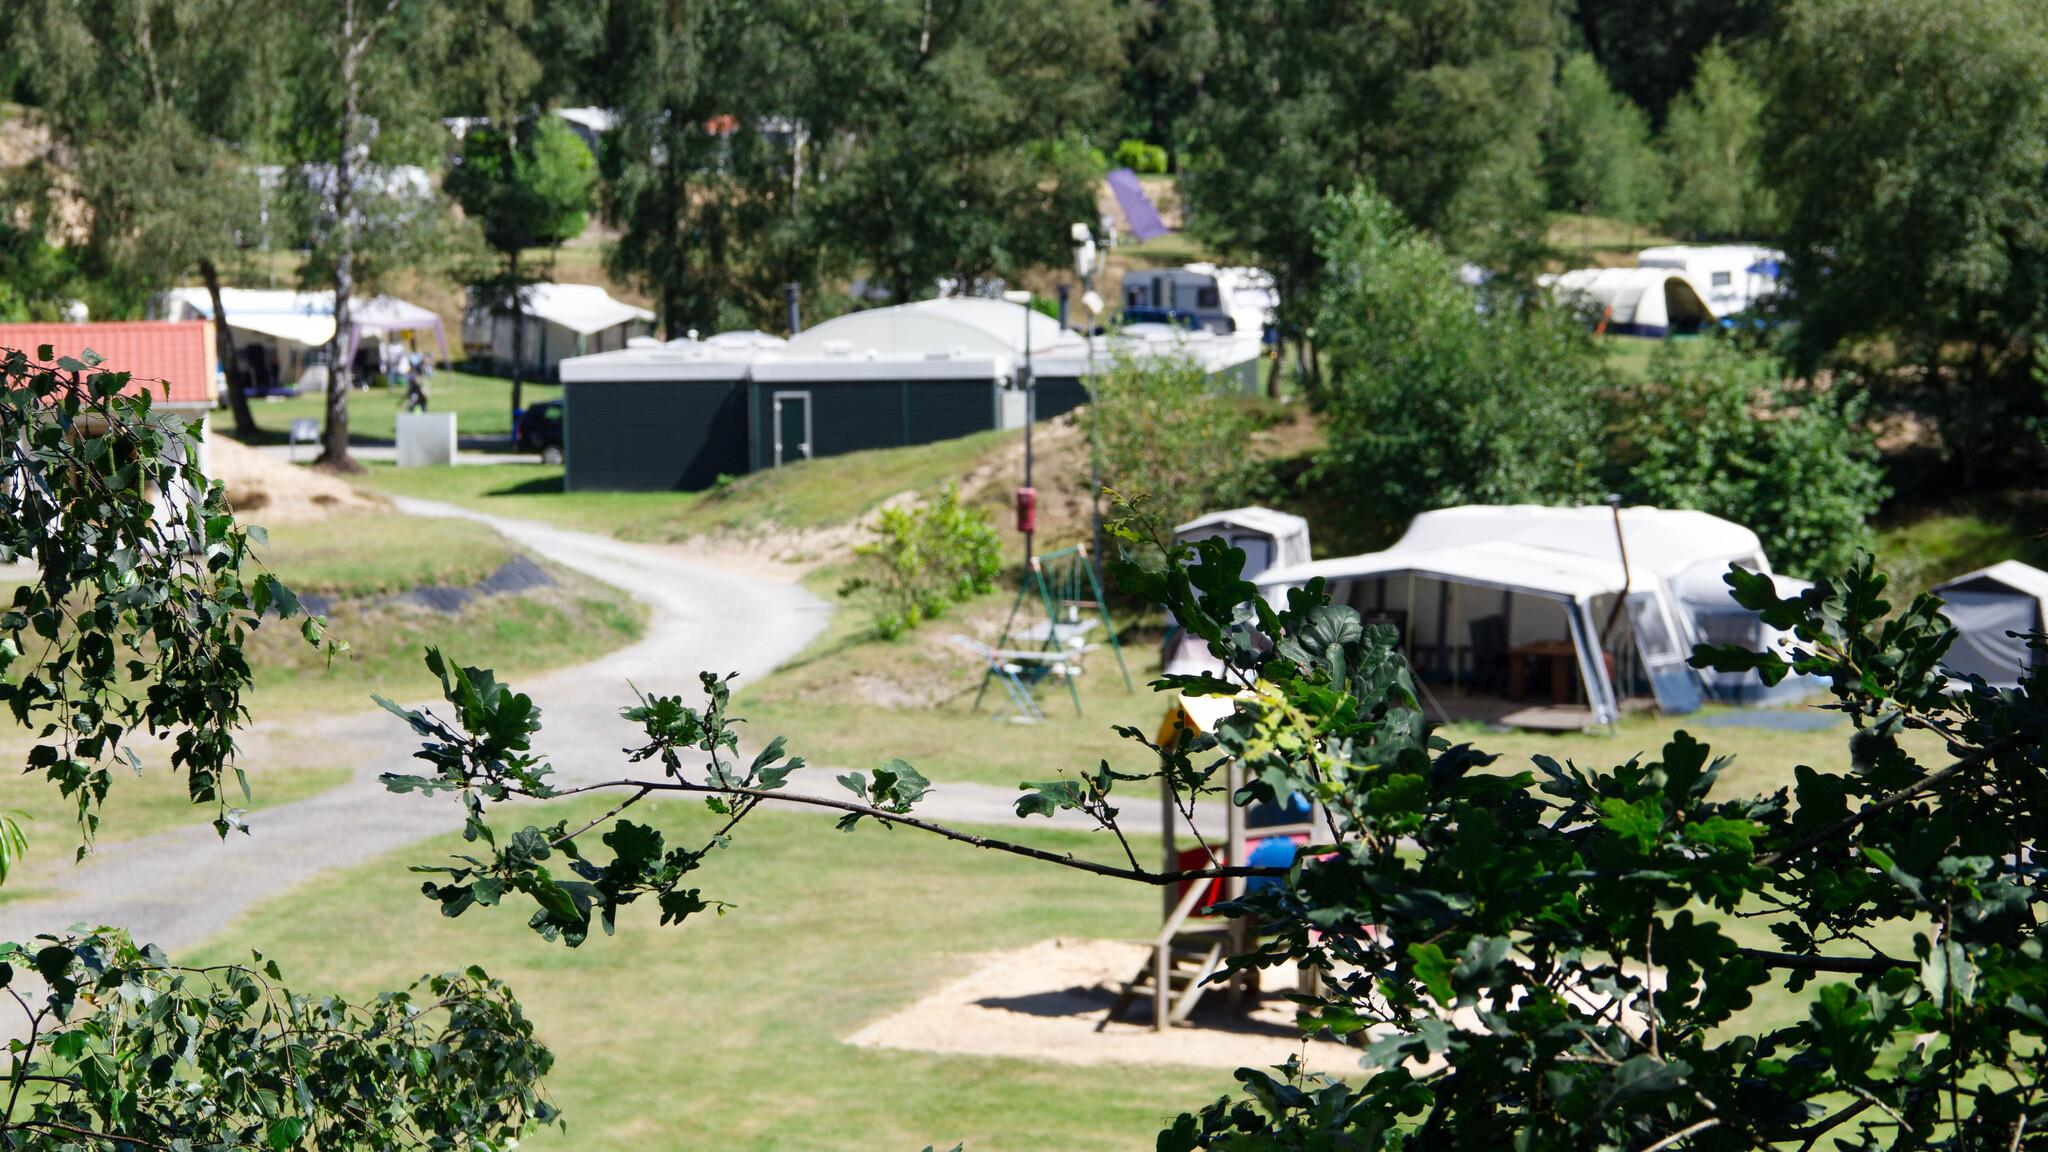 Emplacement - Emplacement Camping Standard - Sans Animaux De Compagnie - Wilsumer Berge